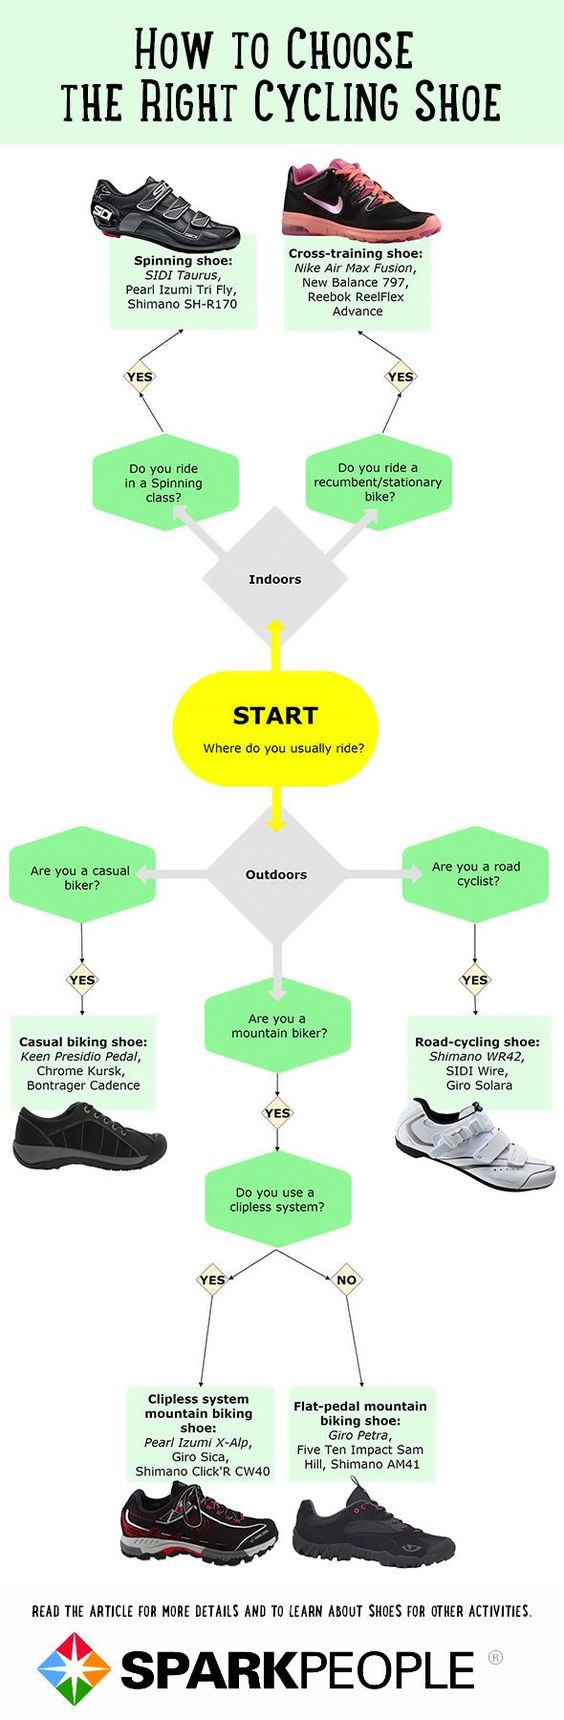 Find Your Sole Mate: The Perfect Shoe for Every Workout | SparkPeople